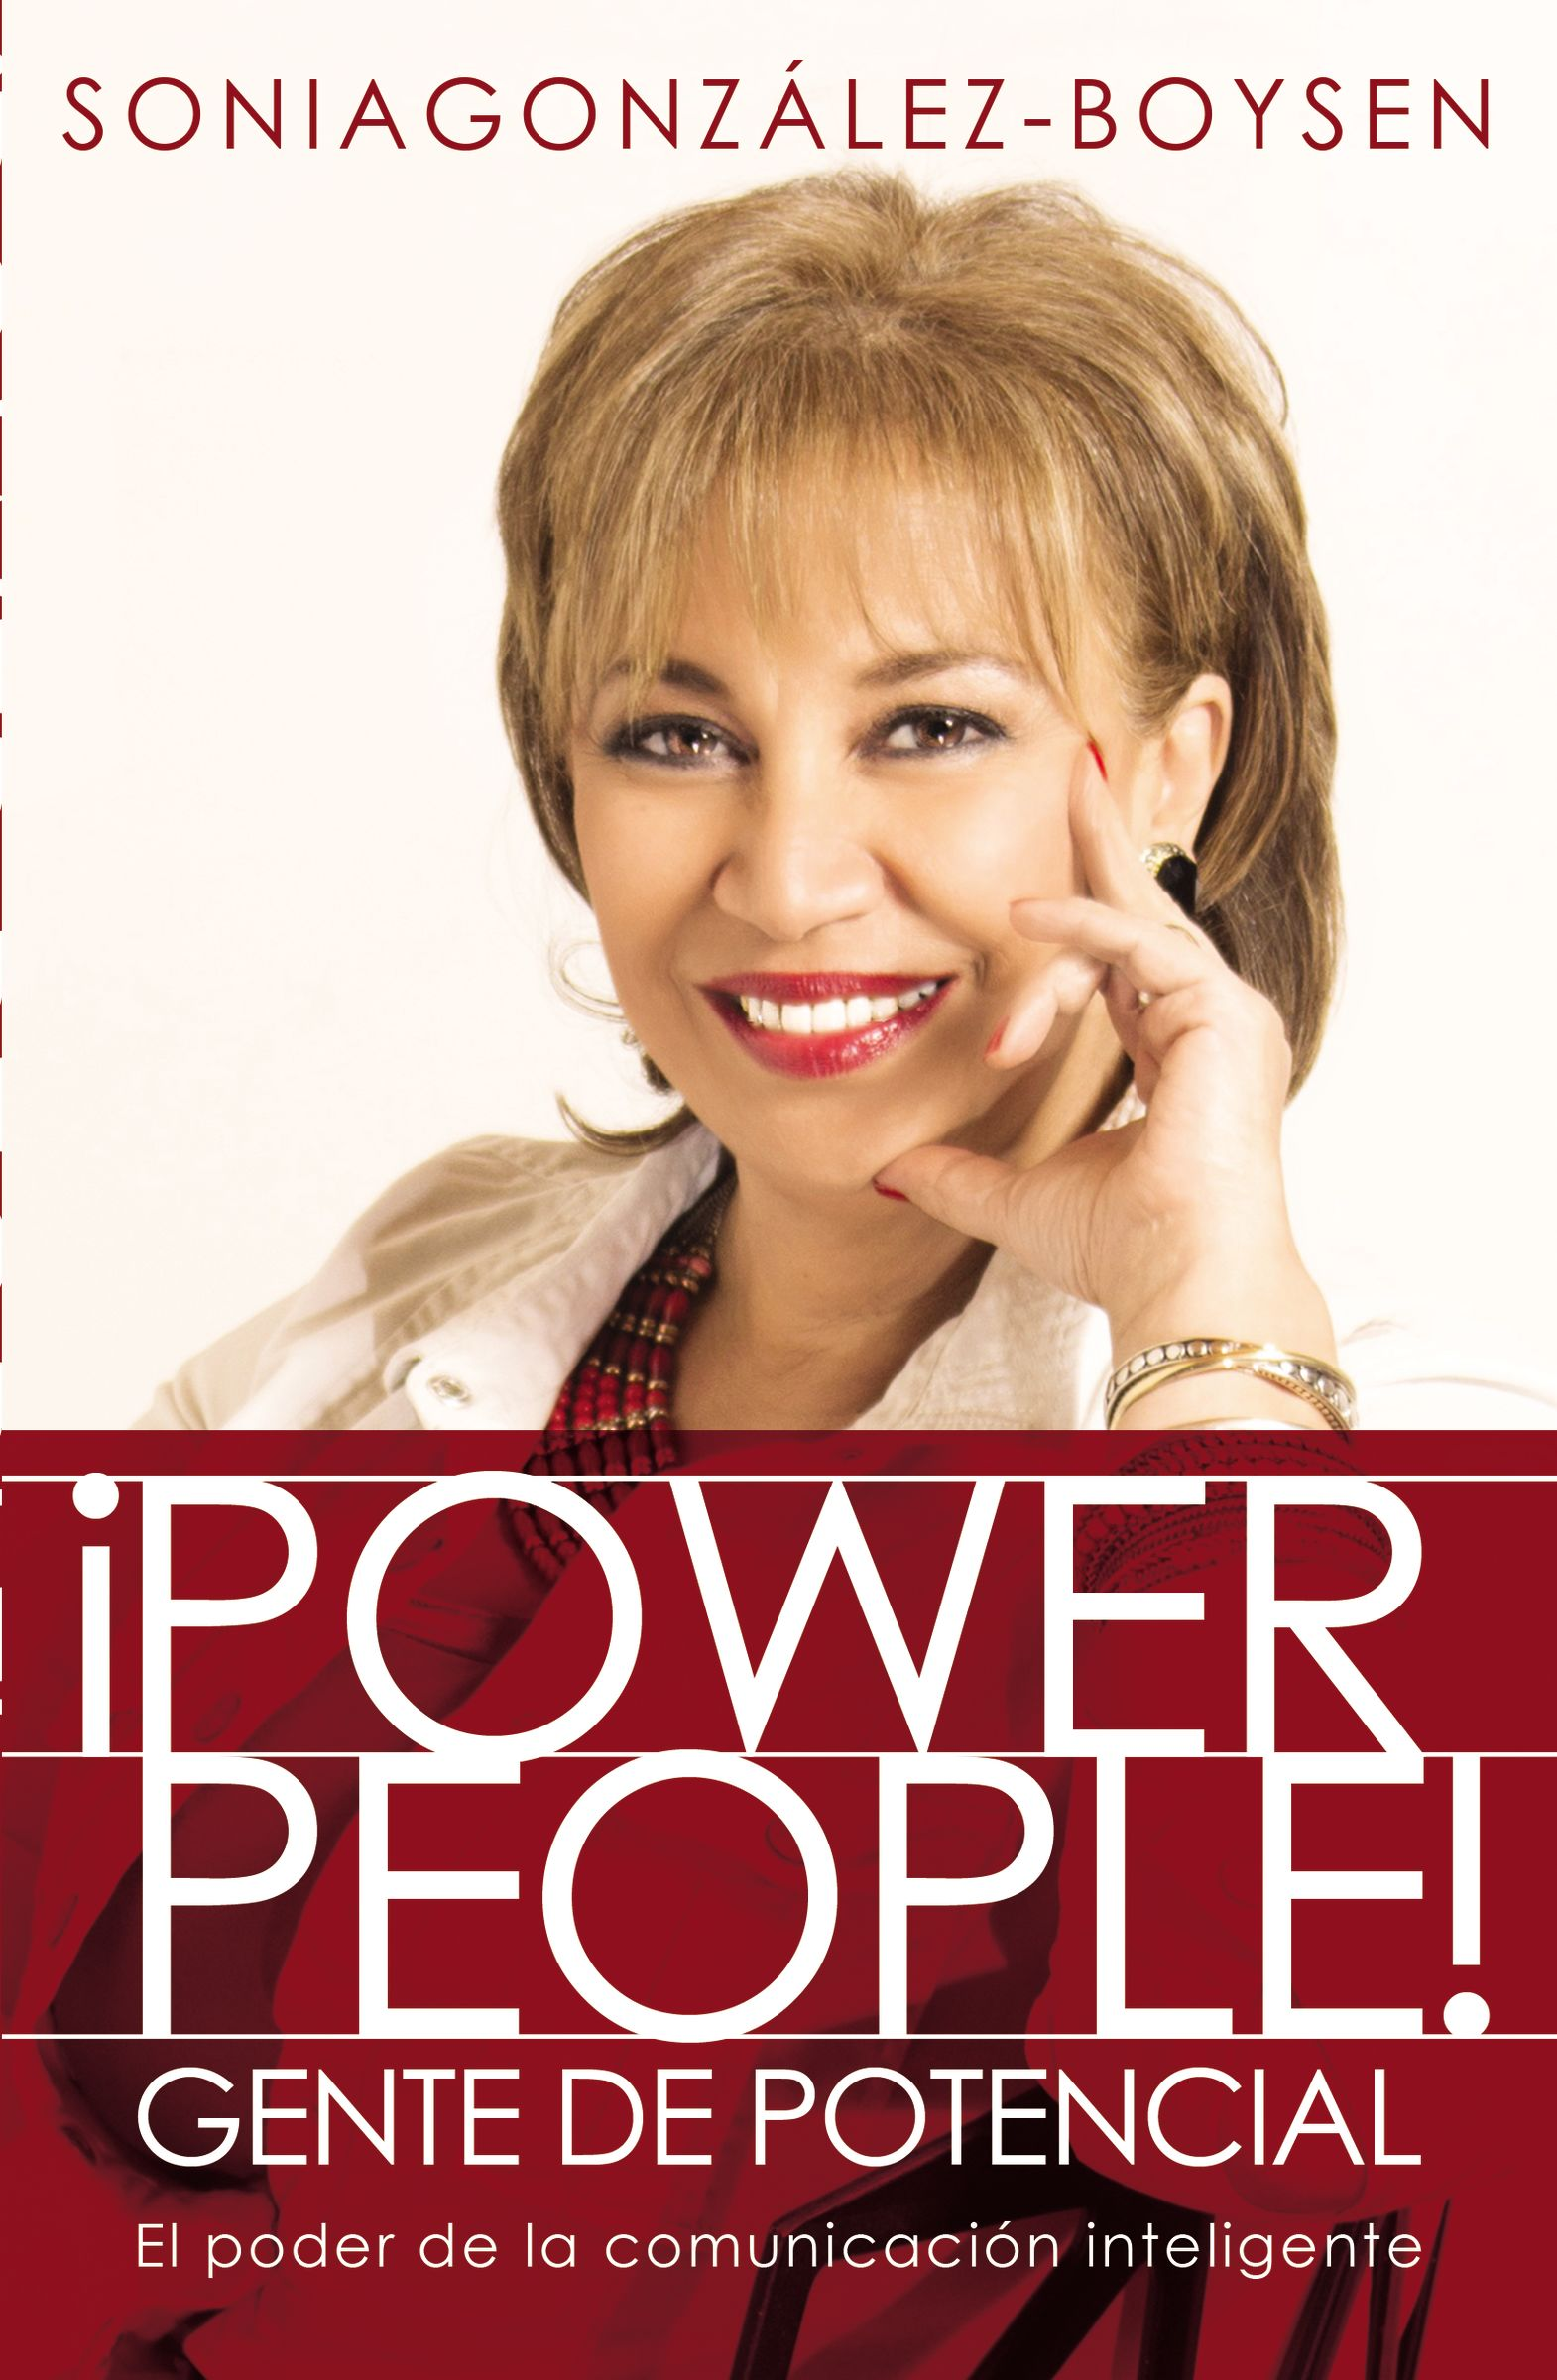 ¡Power People! Gente de potencial